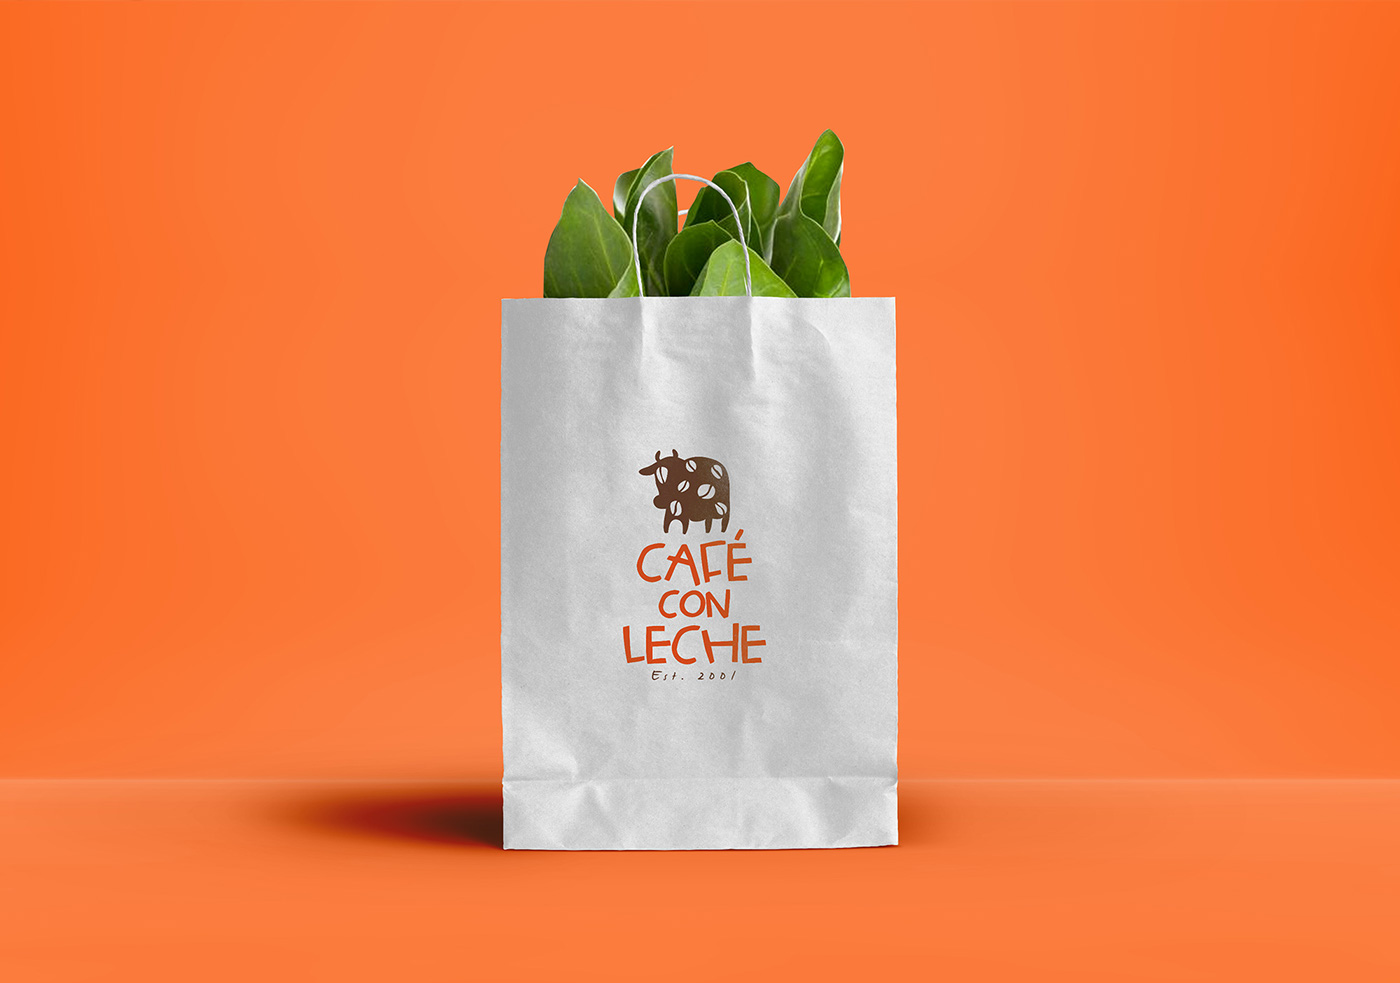 Cafe Con Leche fast casual restaurant branding by Emicel Mata in Chicago Illinois